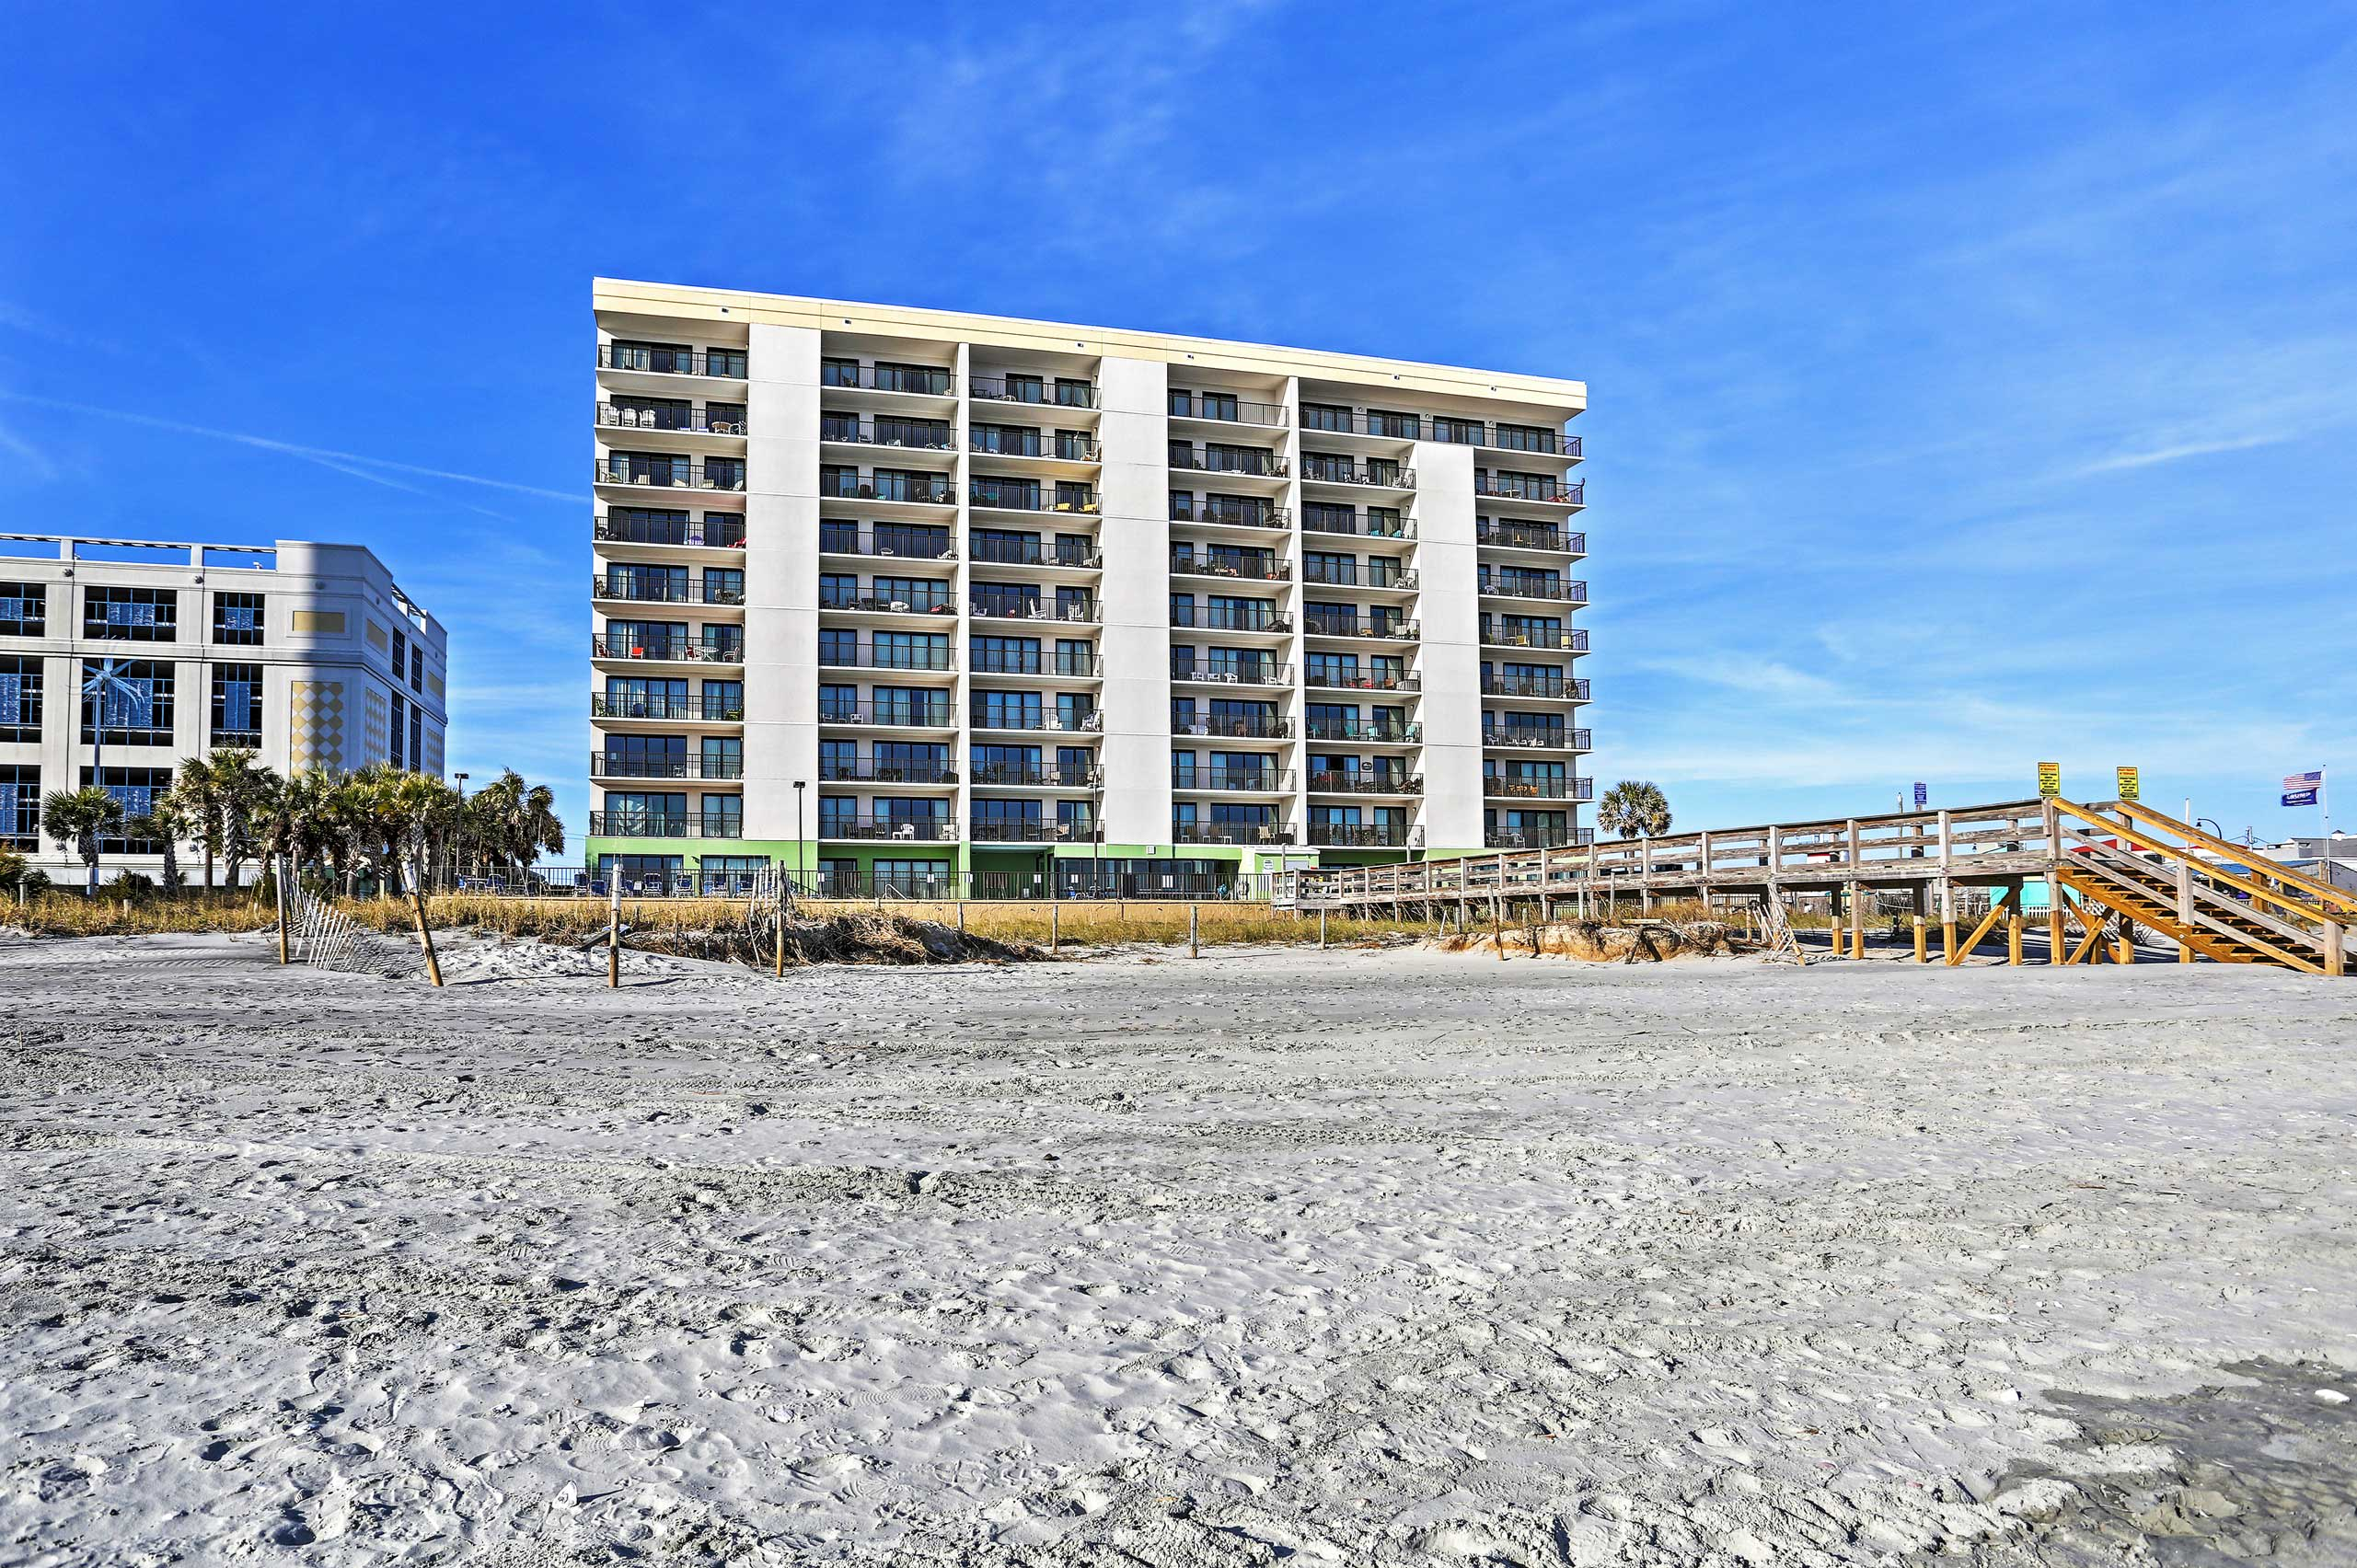 The unit is situated on the 7th floor of an oceanfront condo complex.